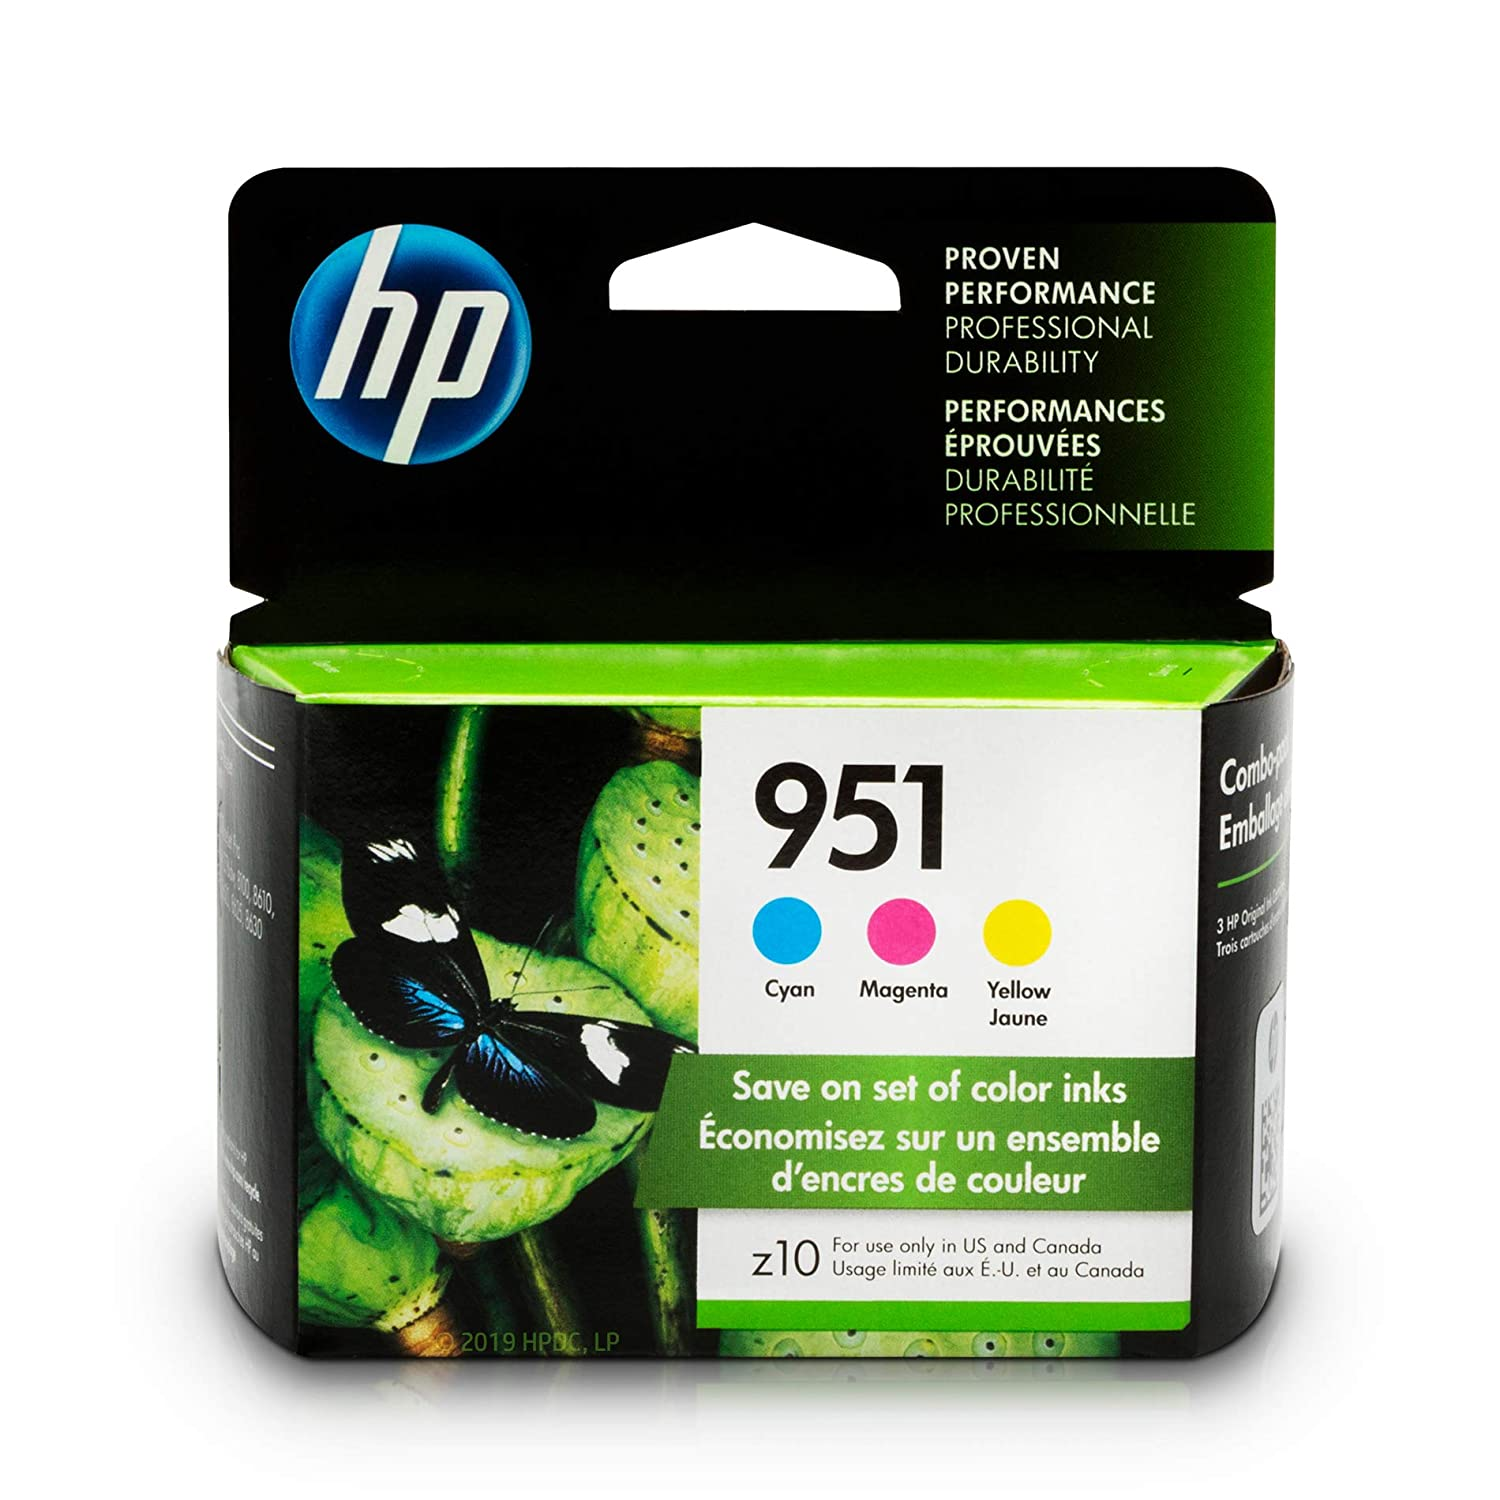 HP 951 Ink Cartridges: Cyan, Magenta & Yellow, 3 Ink Cartridges (CN050AN, CN051AN, CN052AN)